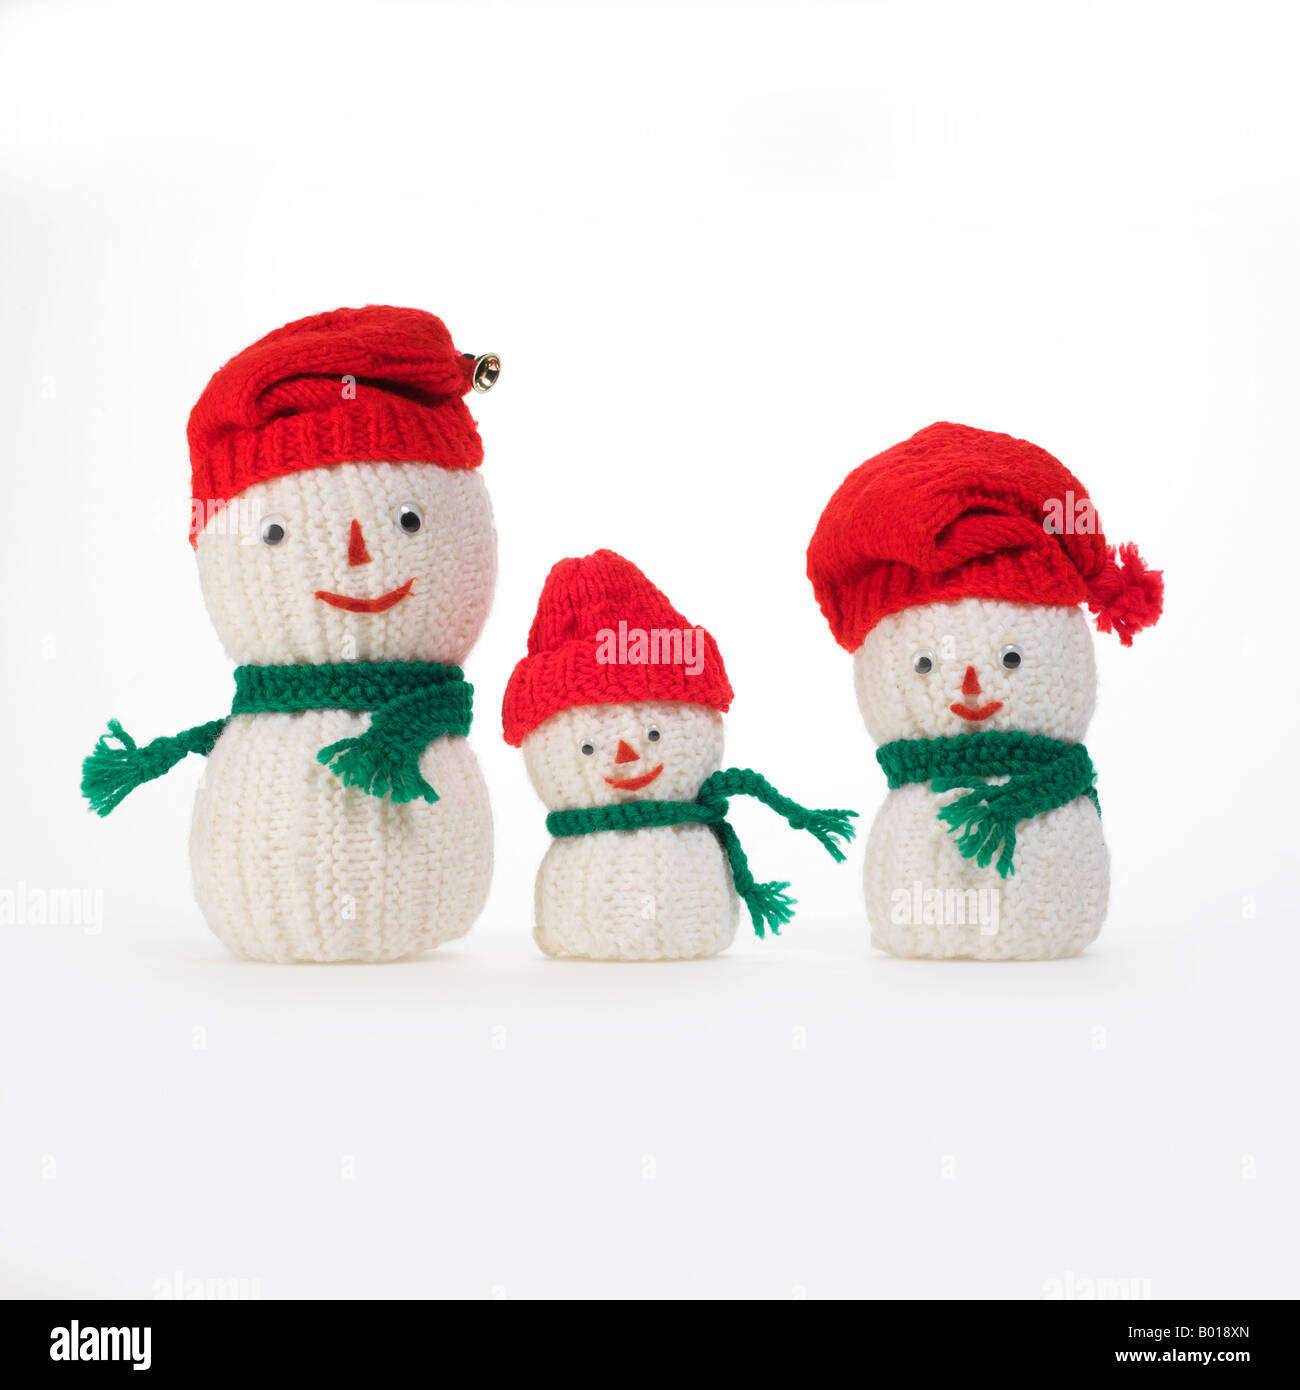 3 knit snowmen family with red caps and green scarves - Stock Image